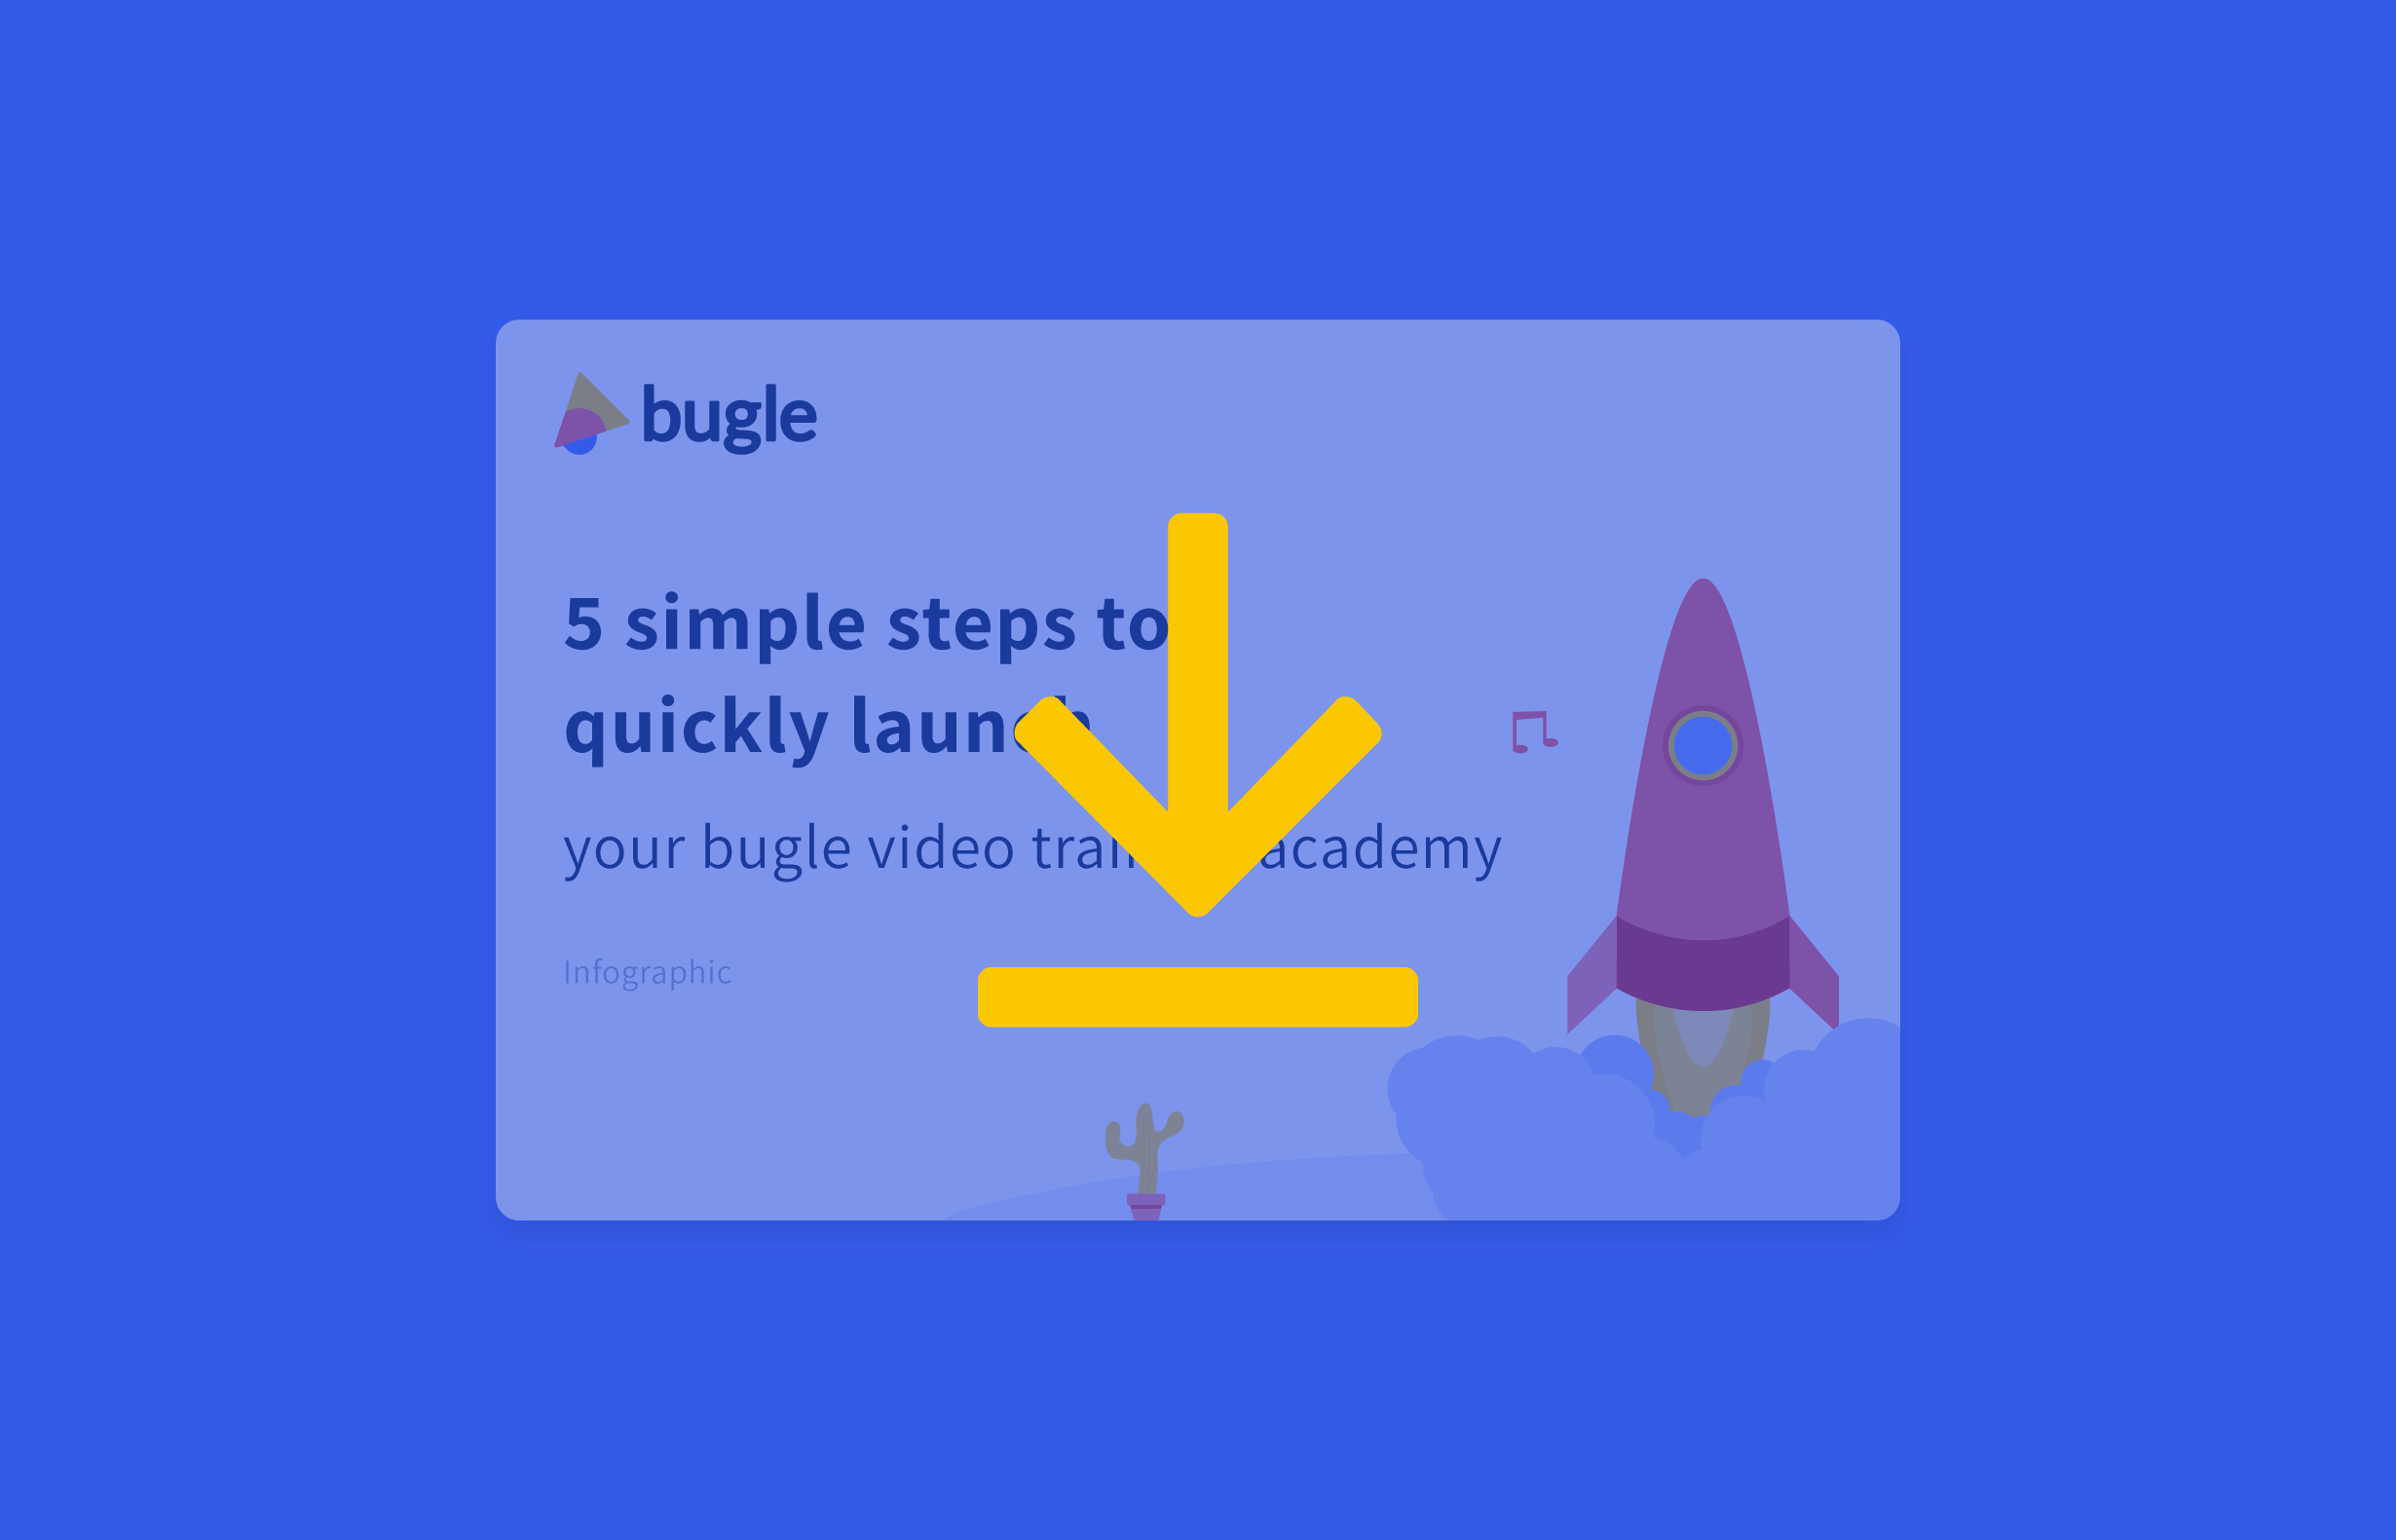 how to setup bugle video training academy in less than 2 hours